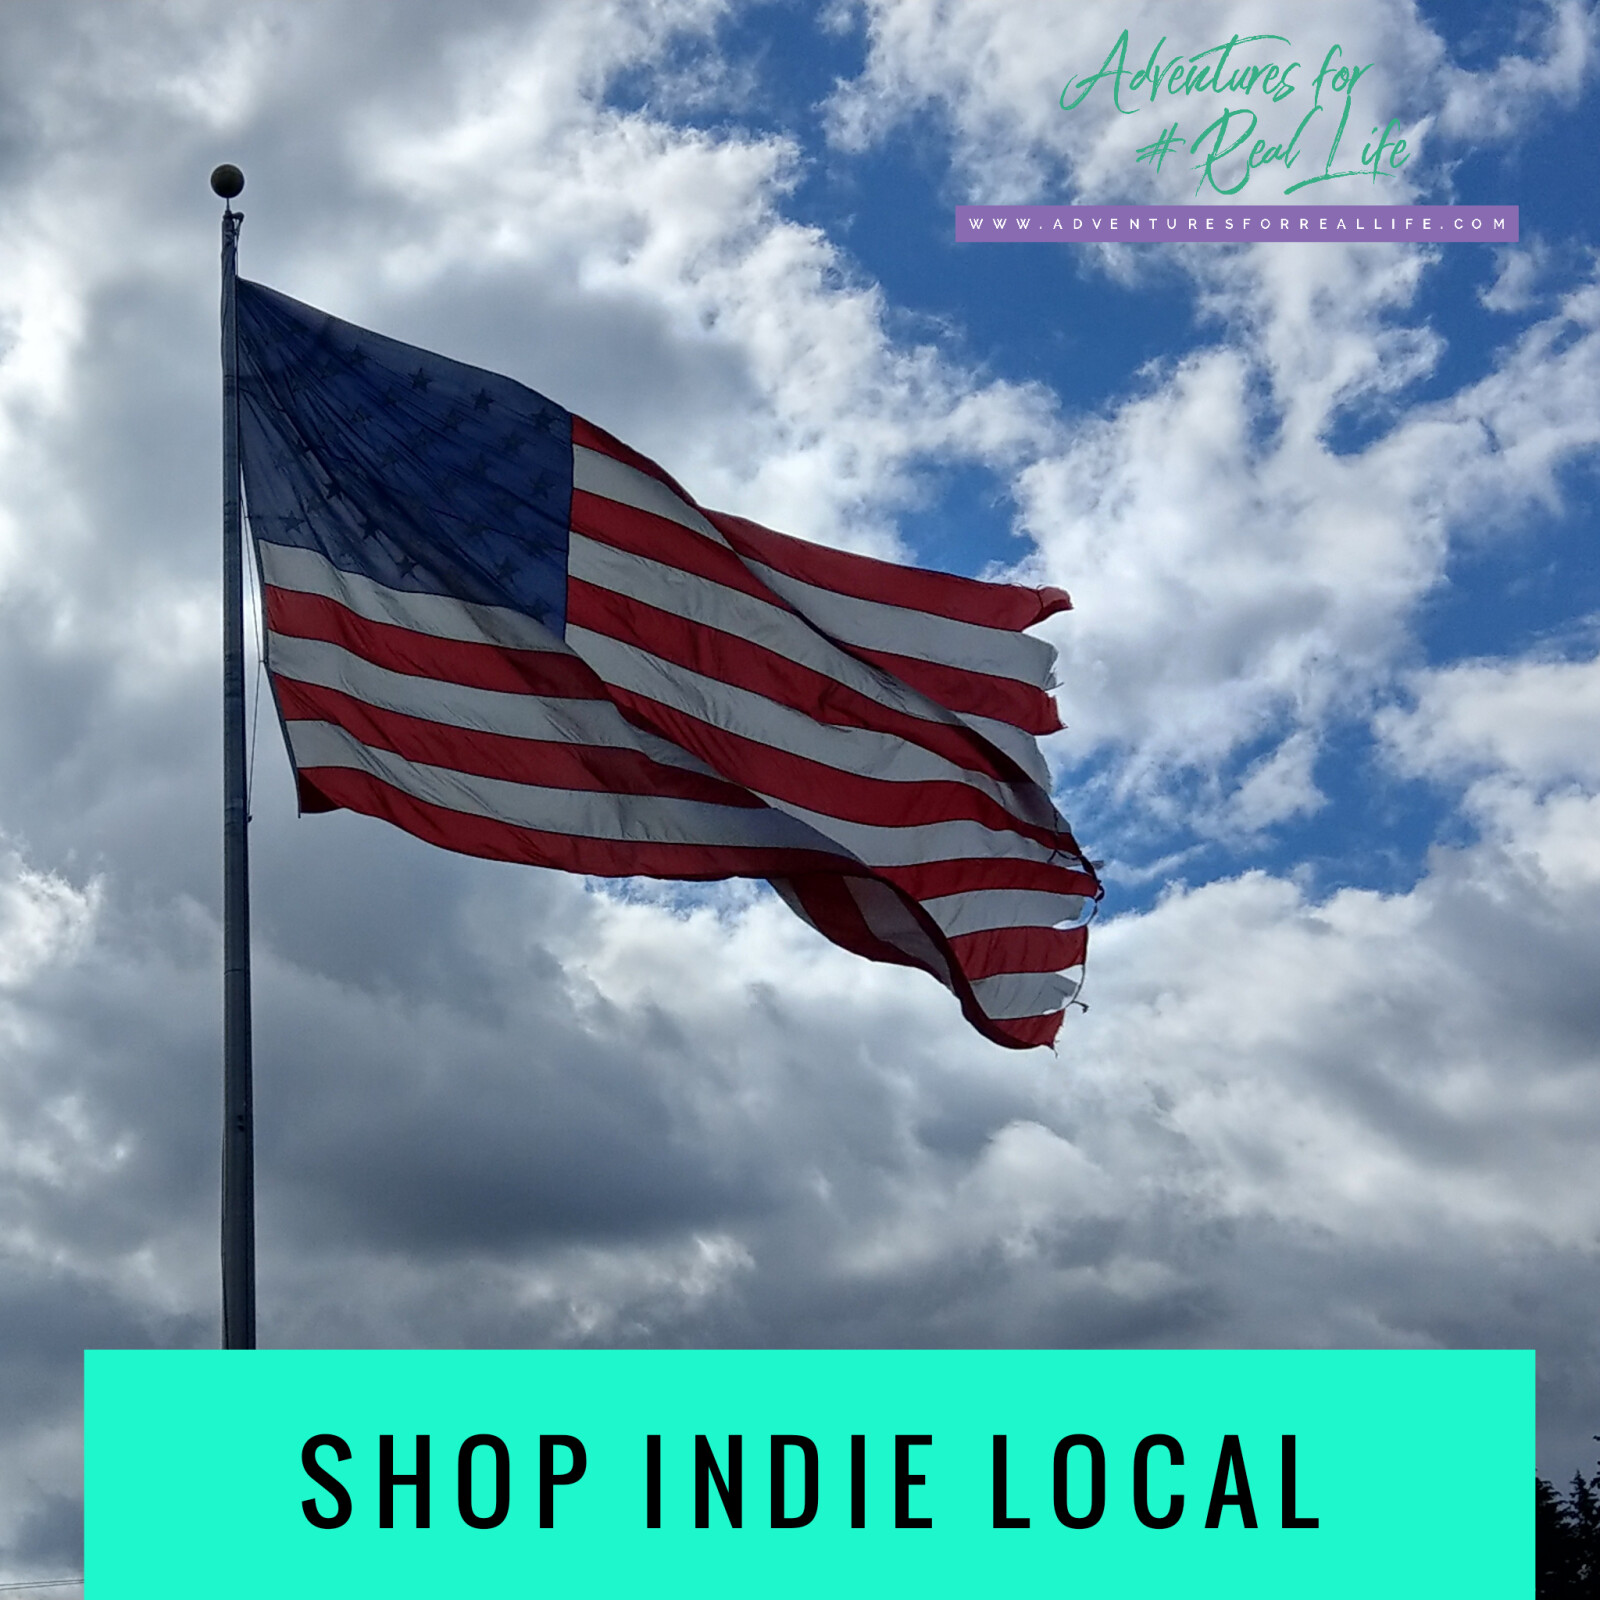 Shop Indie Local!